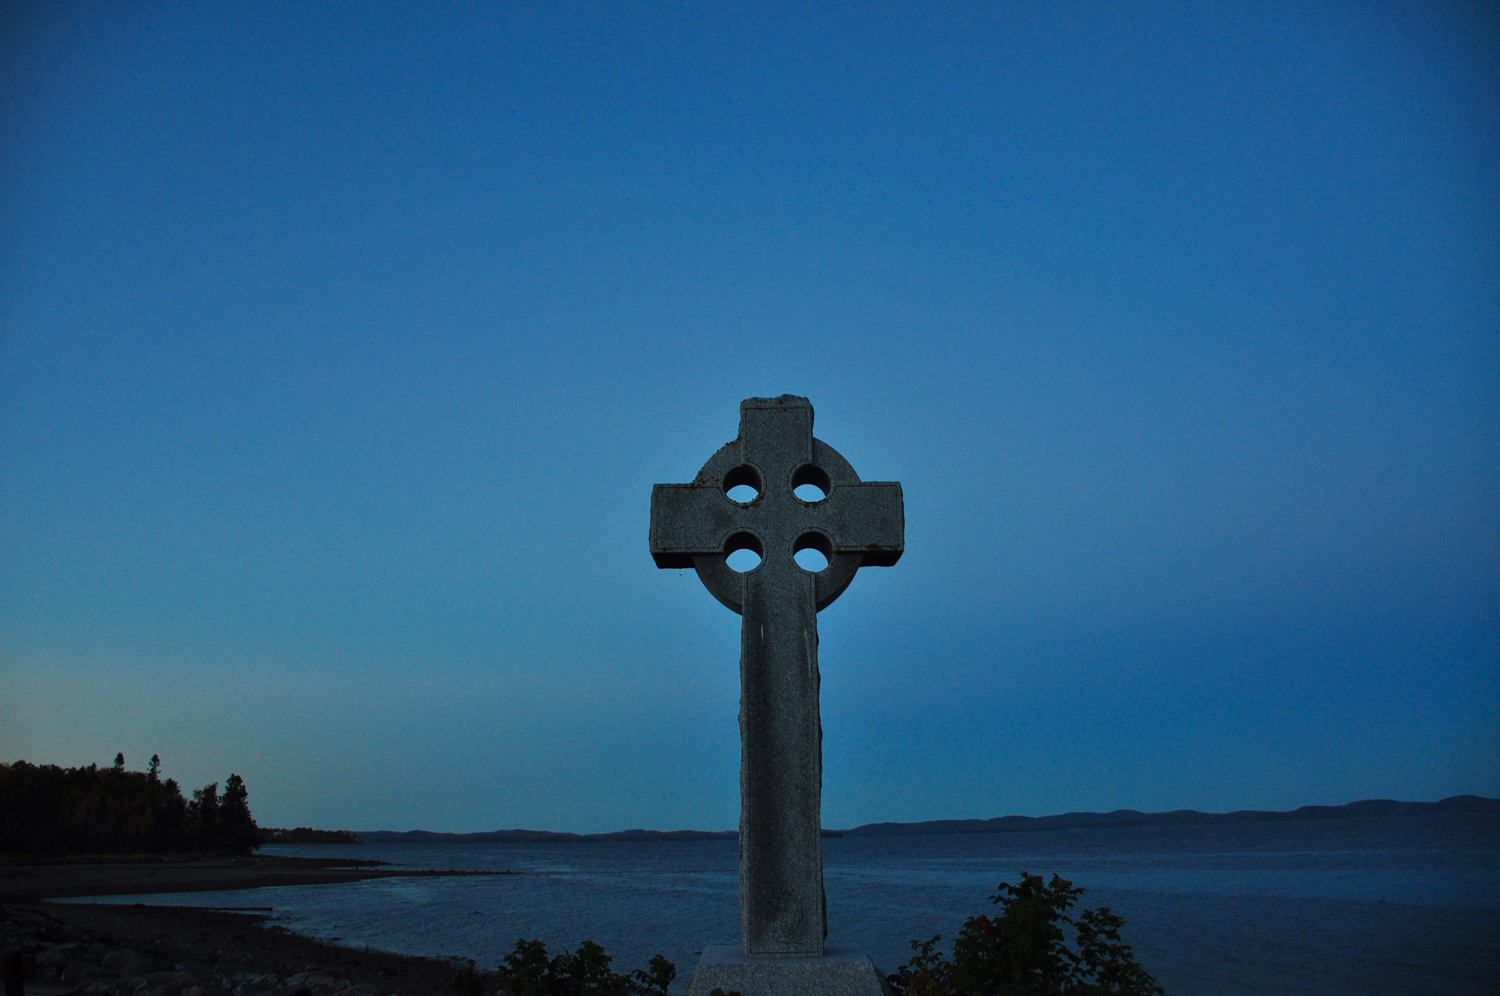 The Celtic Cross Memorial  Saint Andrews by the Sea  commemorates the many Irish Famine immigrants who passed away on Hospital Island, in the Passamaquoddy Bay, awaiting freedom in the America's which they could see from their island holding place.